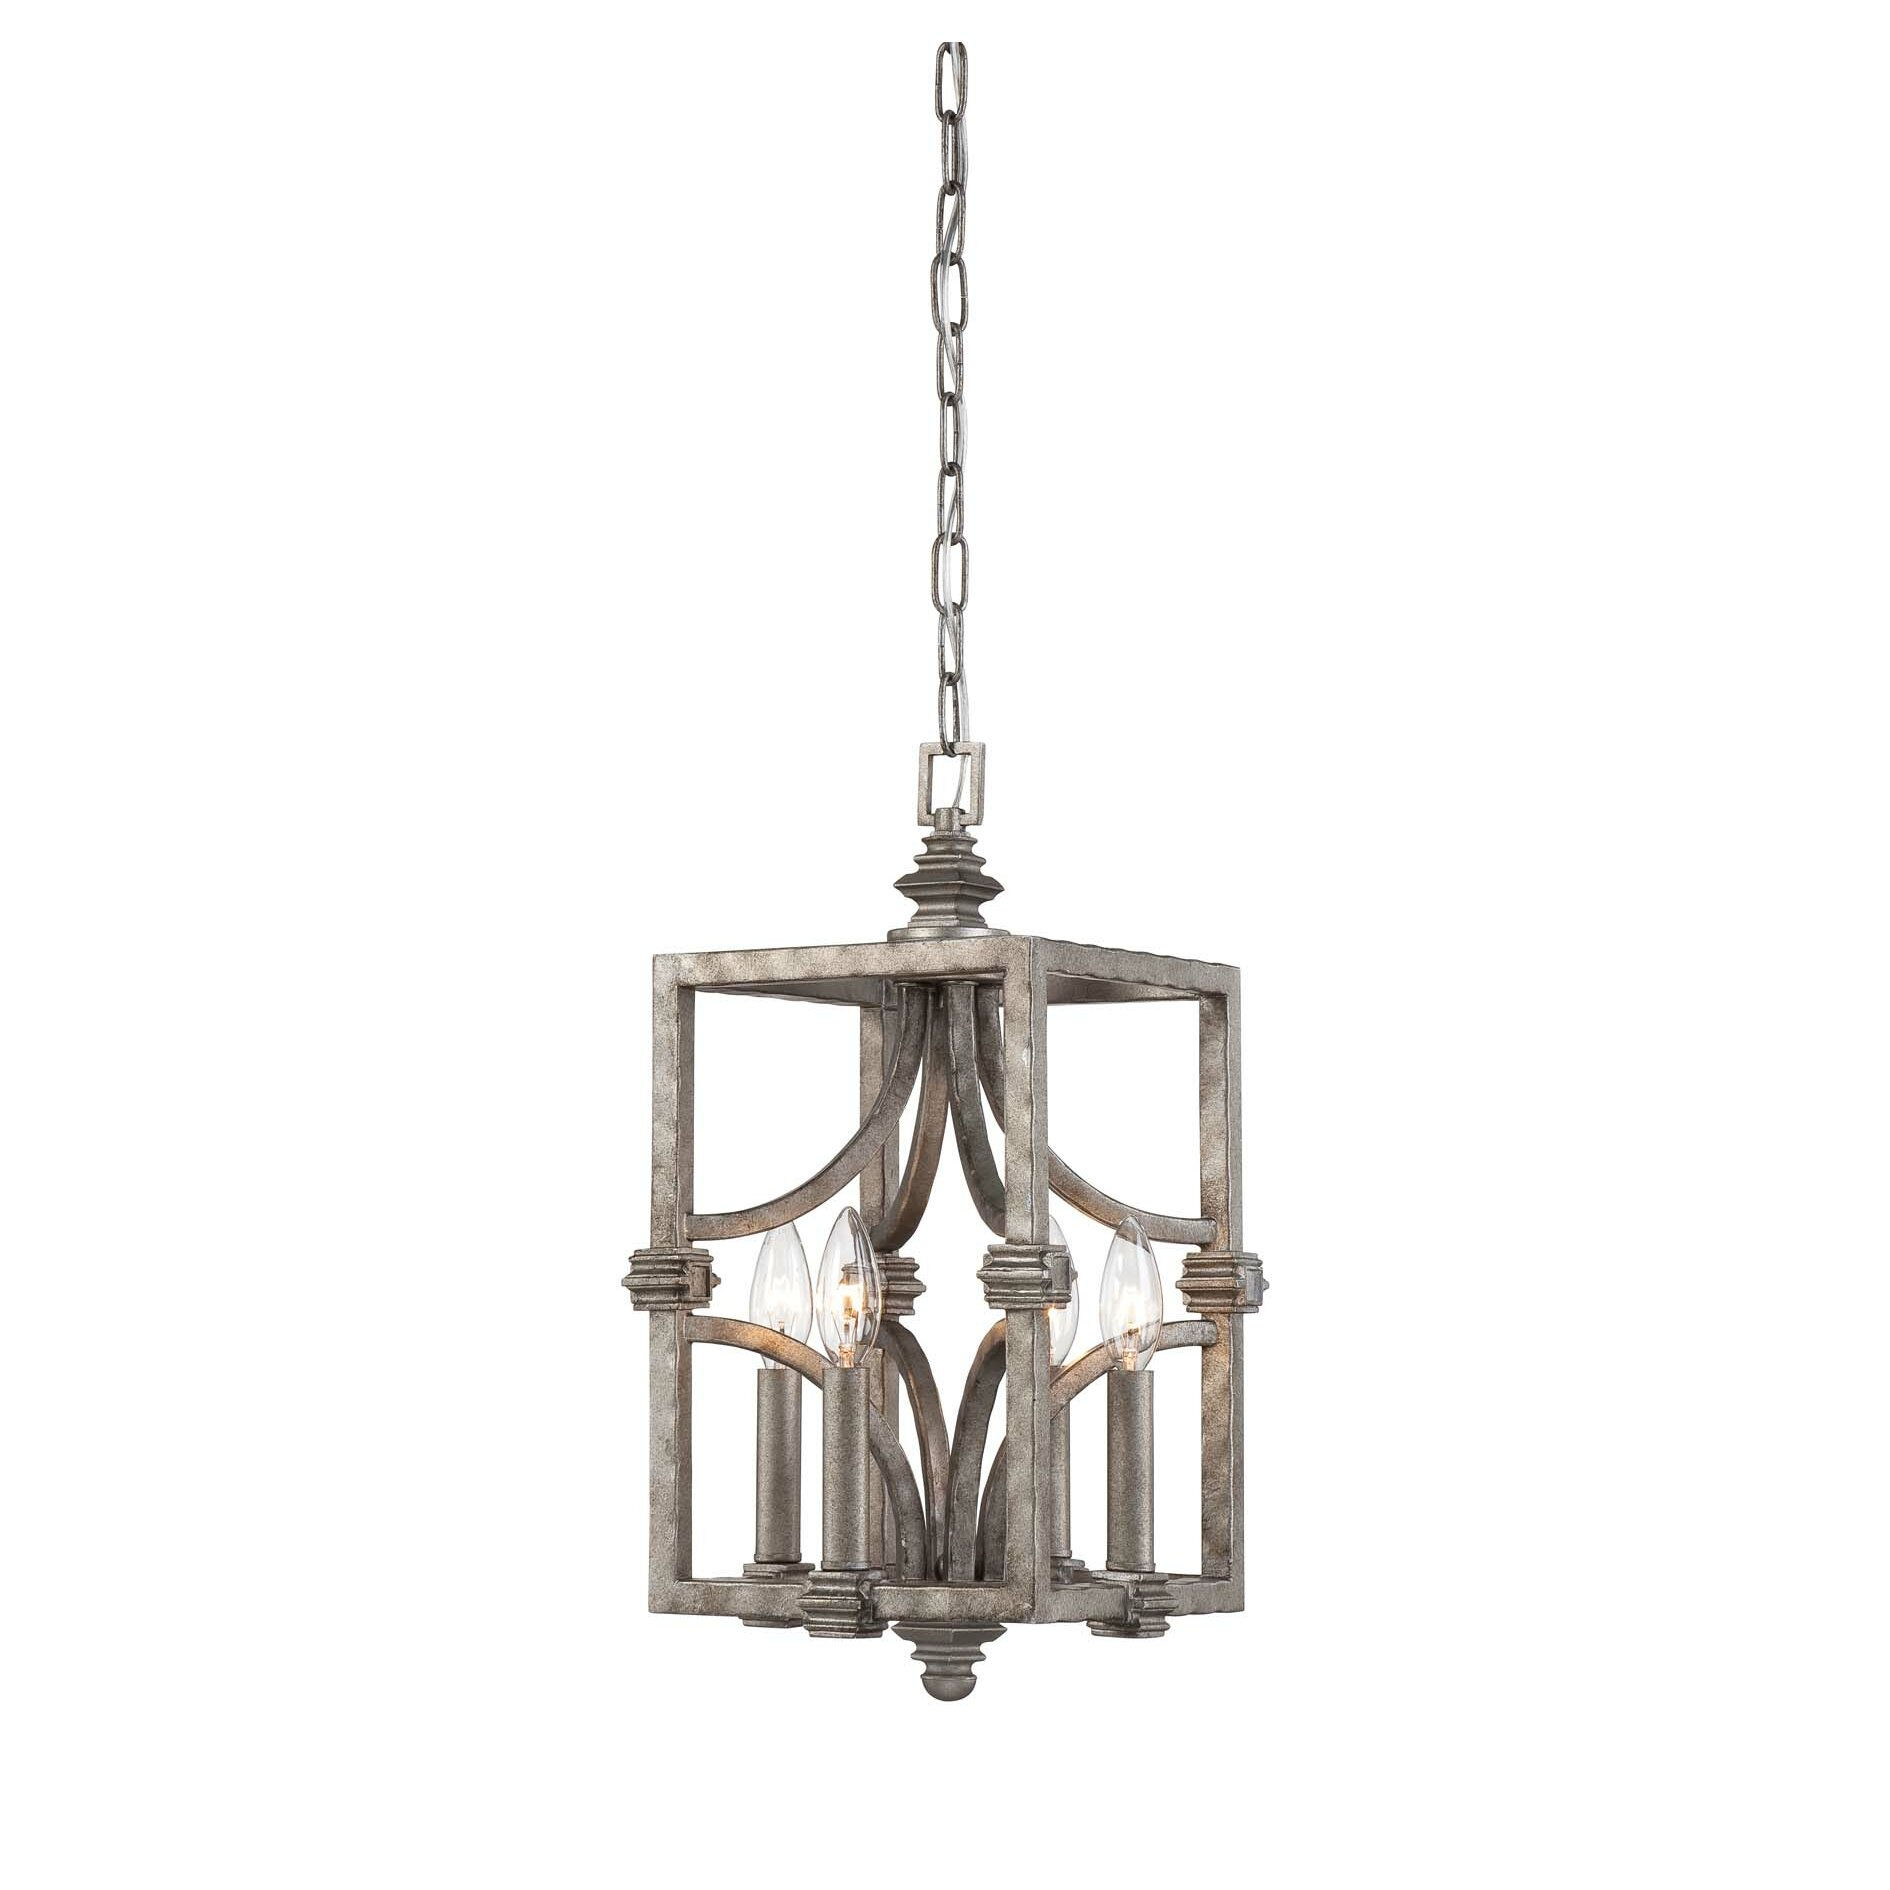 Savoy House Foyer Light : Savoy house structure light foyer pendant reviews